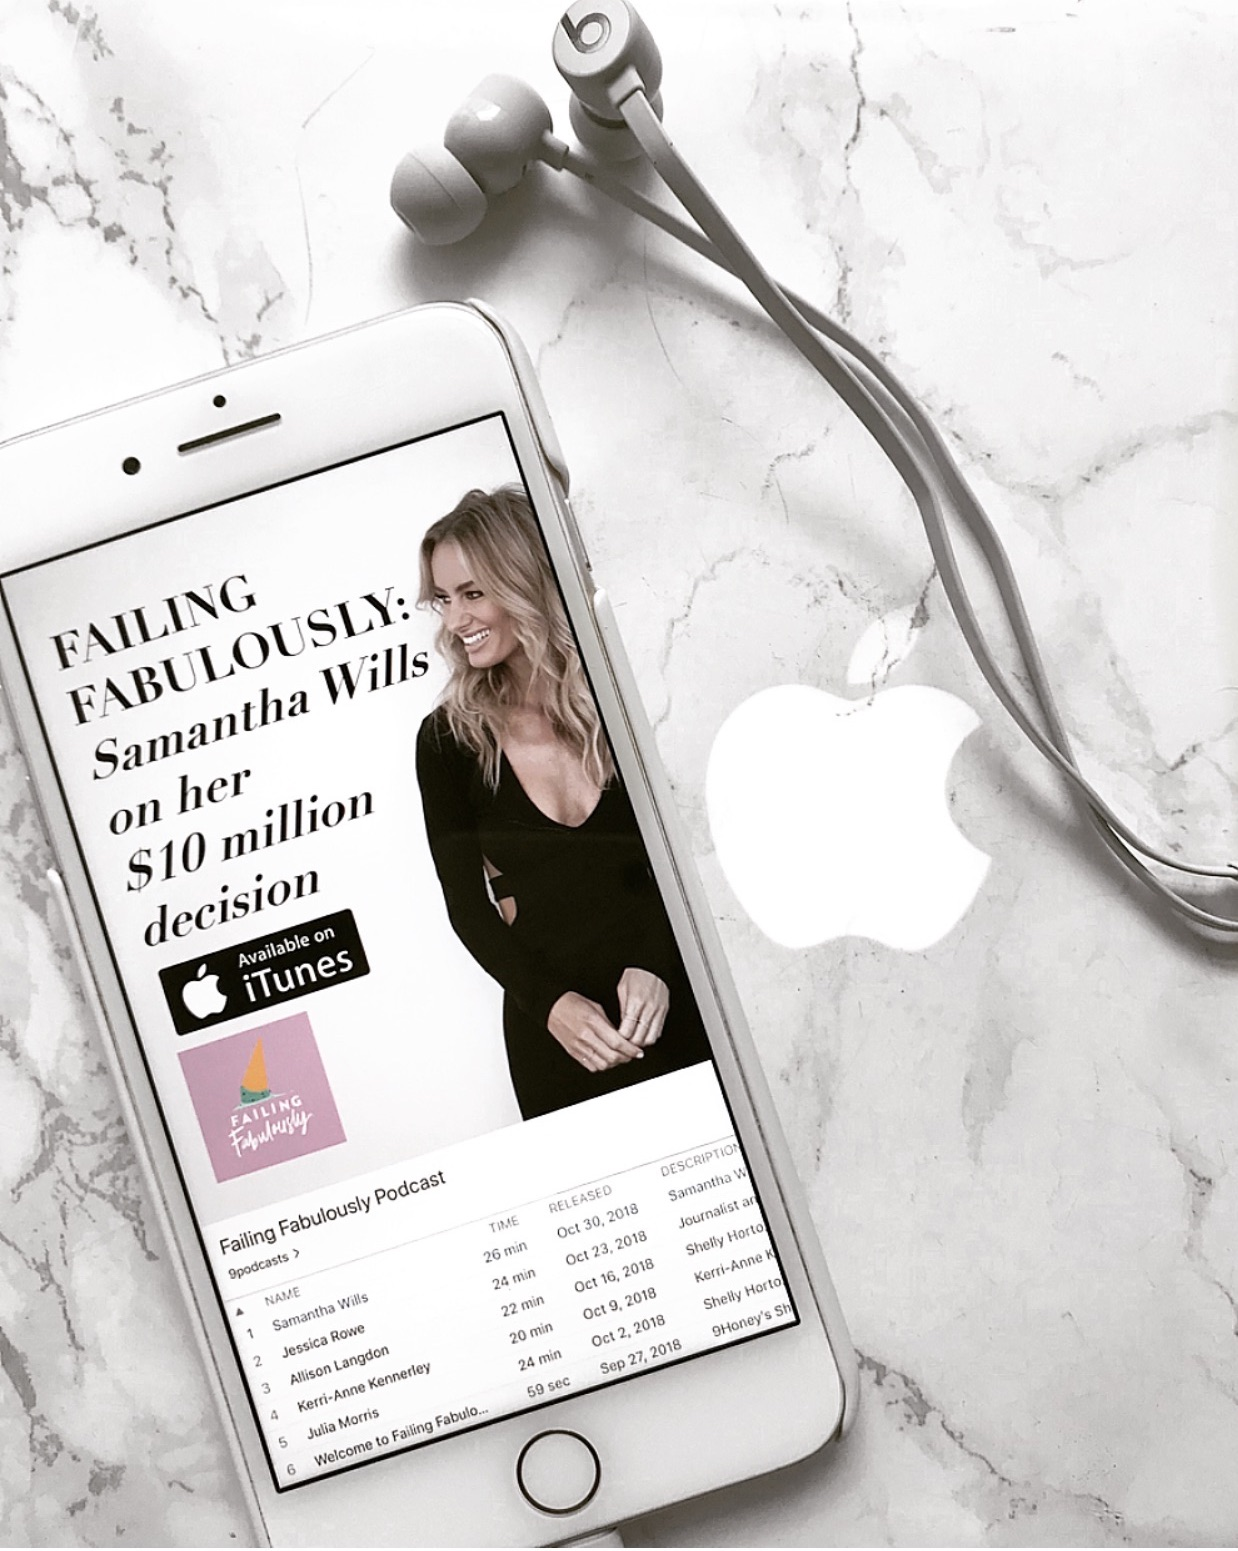 PODCAST: Failing Fabulously - Samantha Wills on her $10 Million dollar decision - WITH SHELLEY HORTON